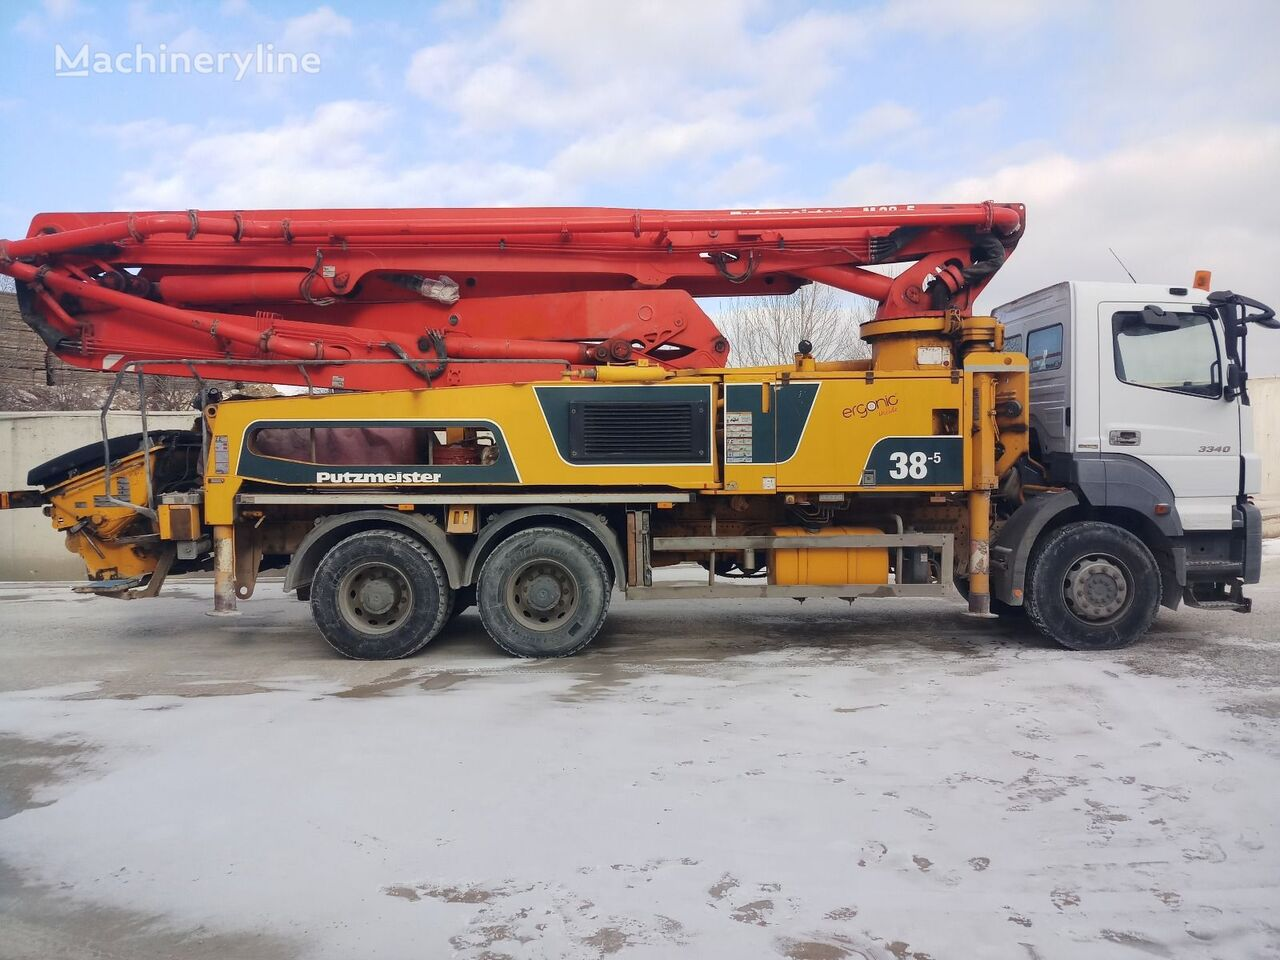 автобетононасос PUTZMEISTER 2015 MODEL 38-5, 2015 MERCEDES BENZ AXOR 3340